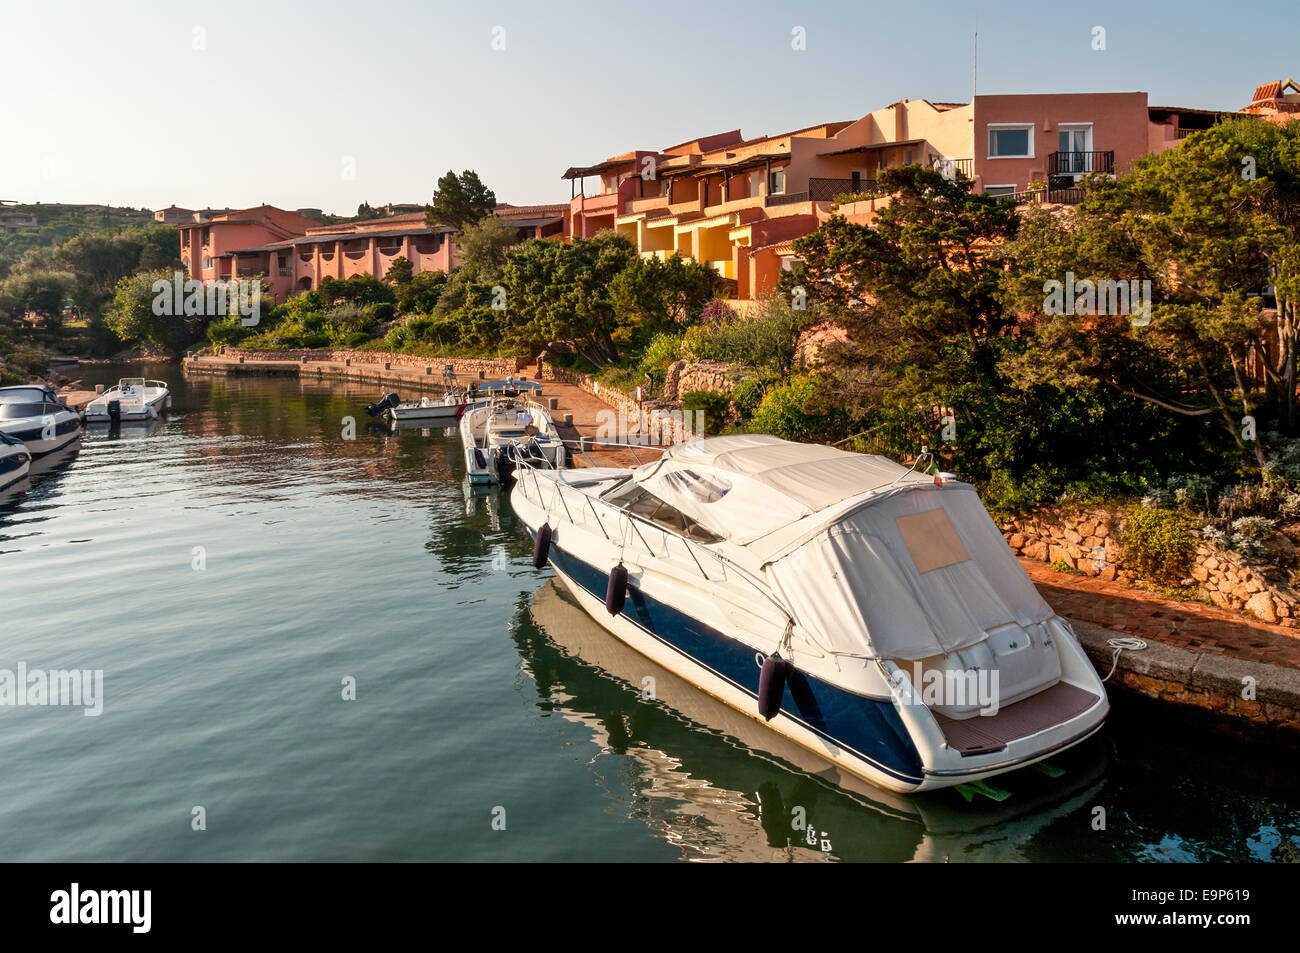 Typical architecture in Northern Sardinia, Italy - Stock Image